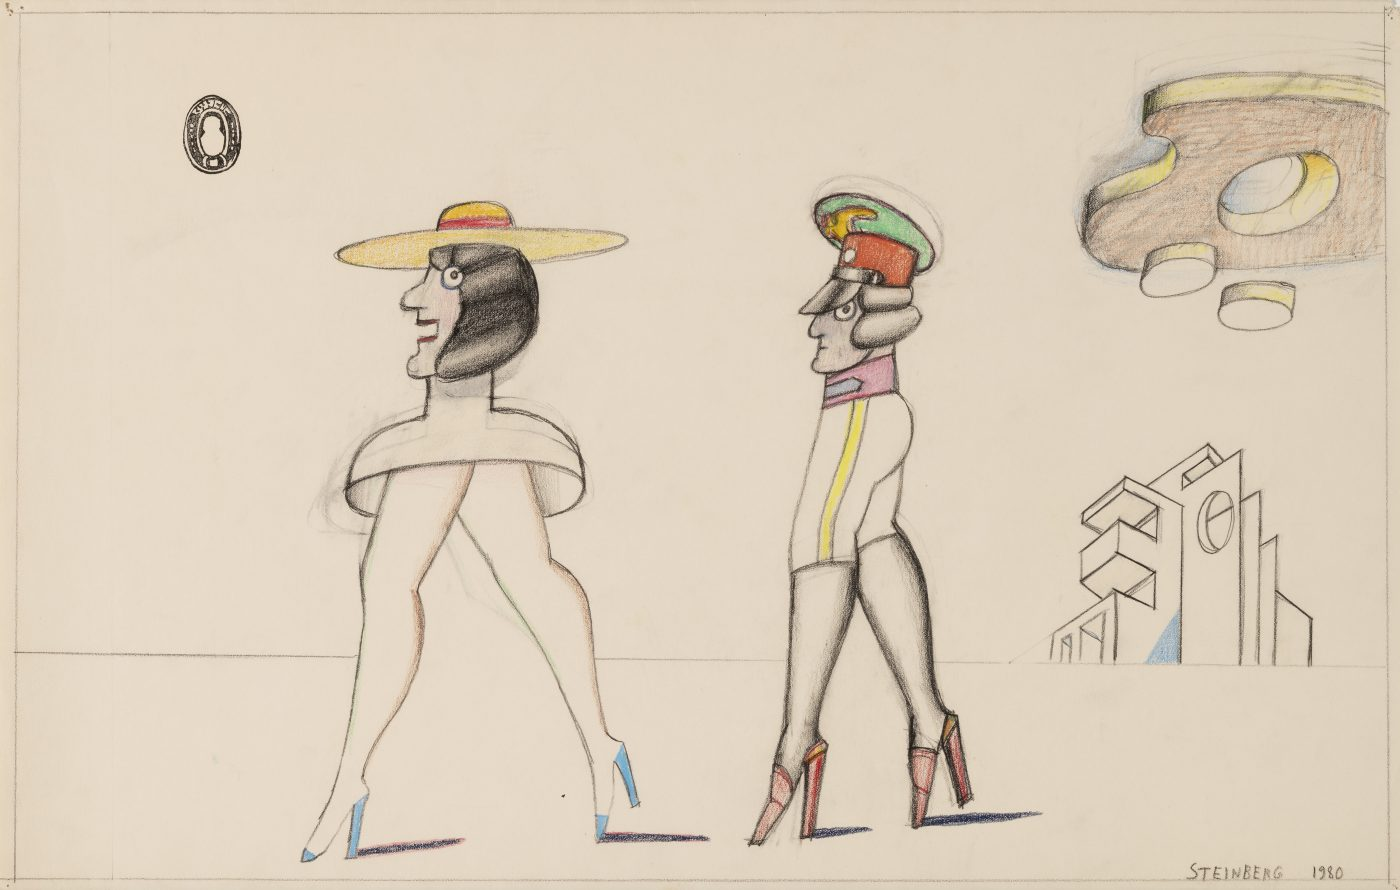 Saul Steinberg, Untitled, 1980